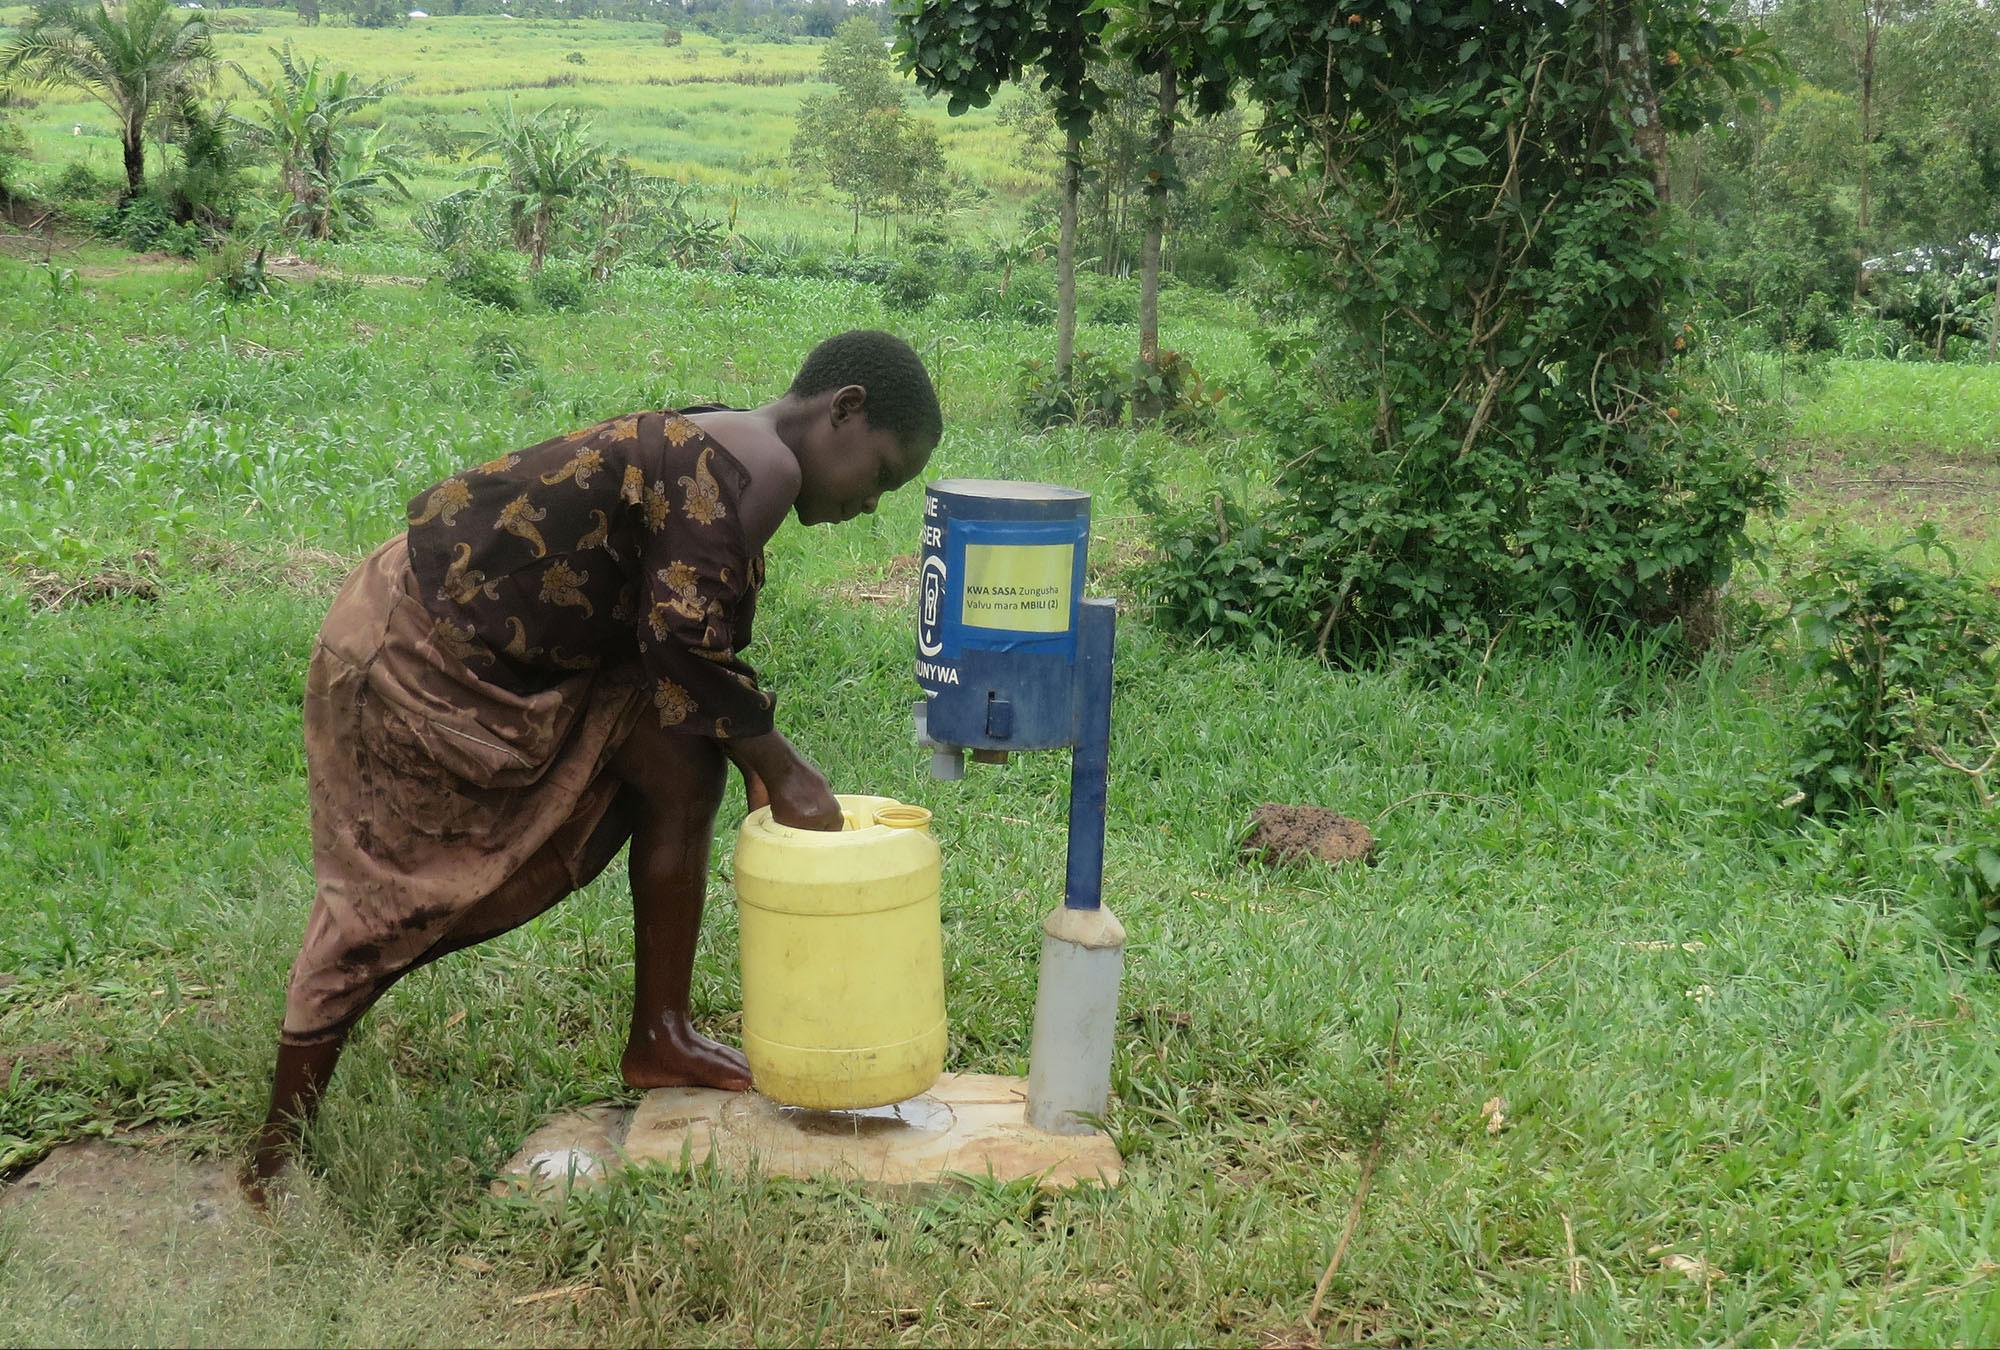 Young girl chlorinating her water at a point-of-use public dispenser, Kenya, 2015